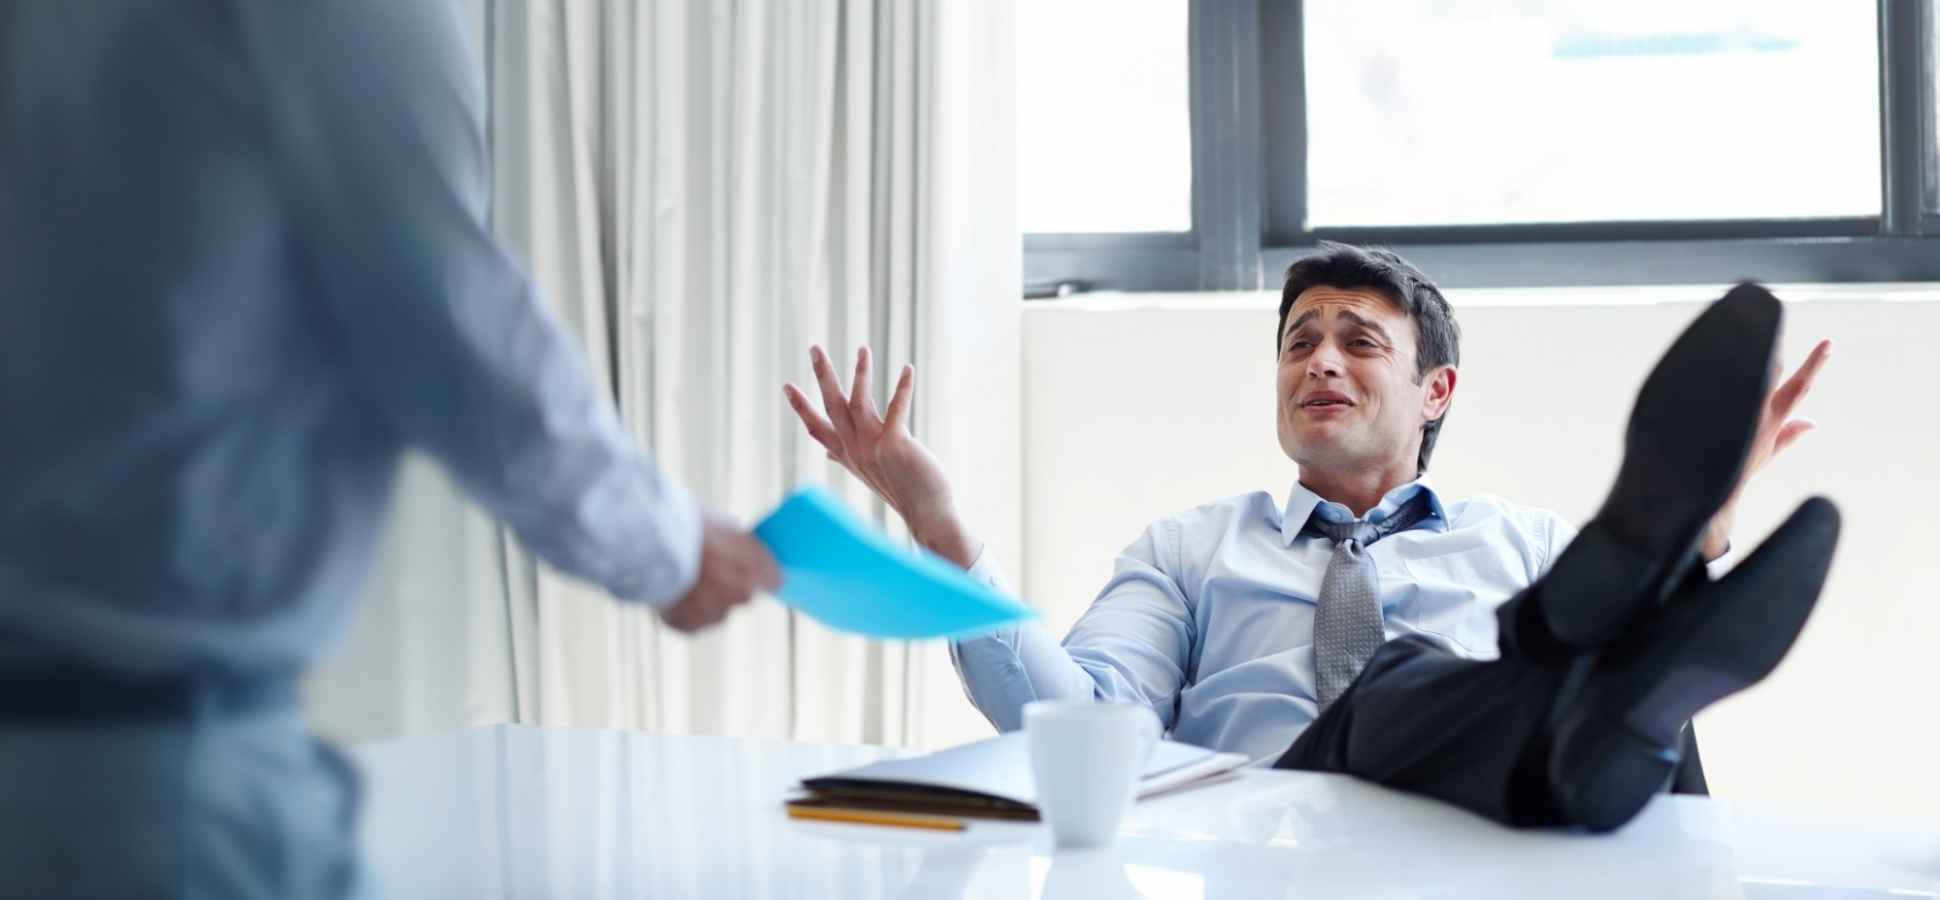 9 Emotional Intelligence Mistakes That Make Leaders Look Really Unprofessional